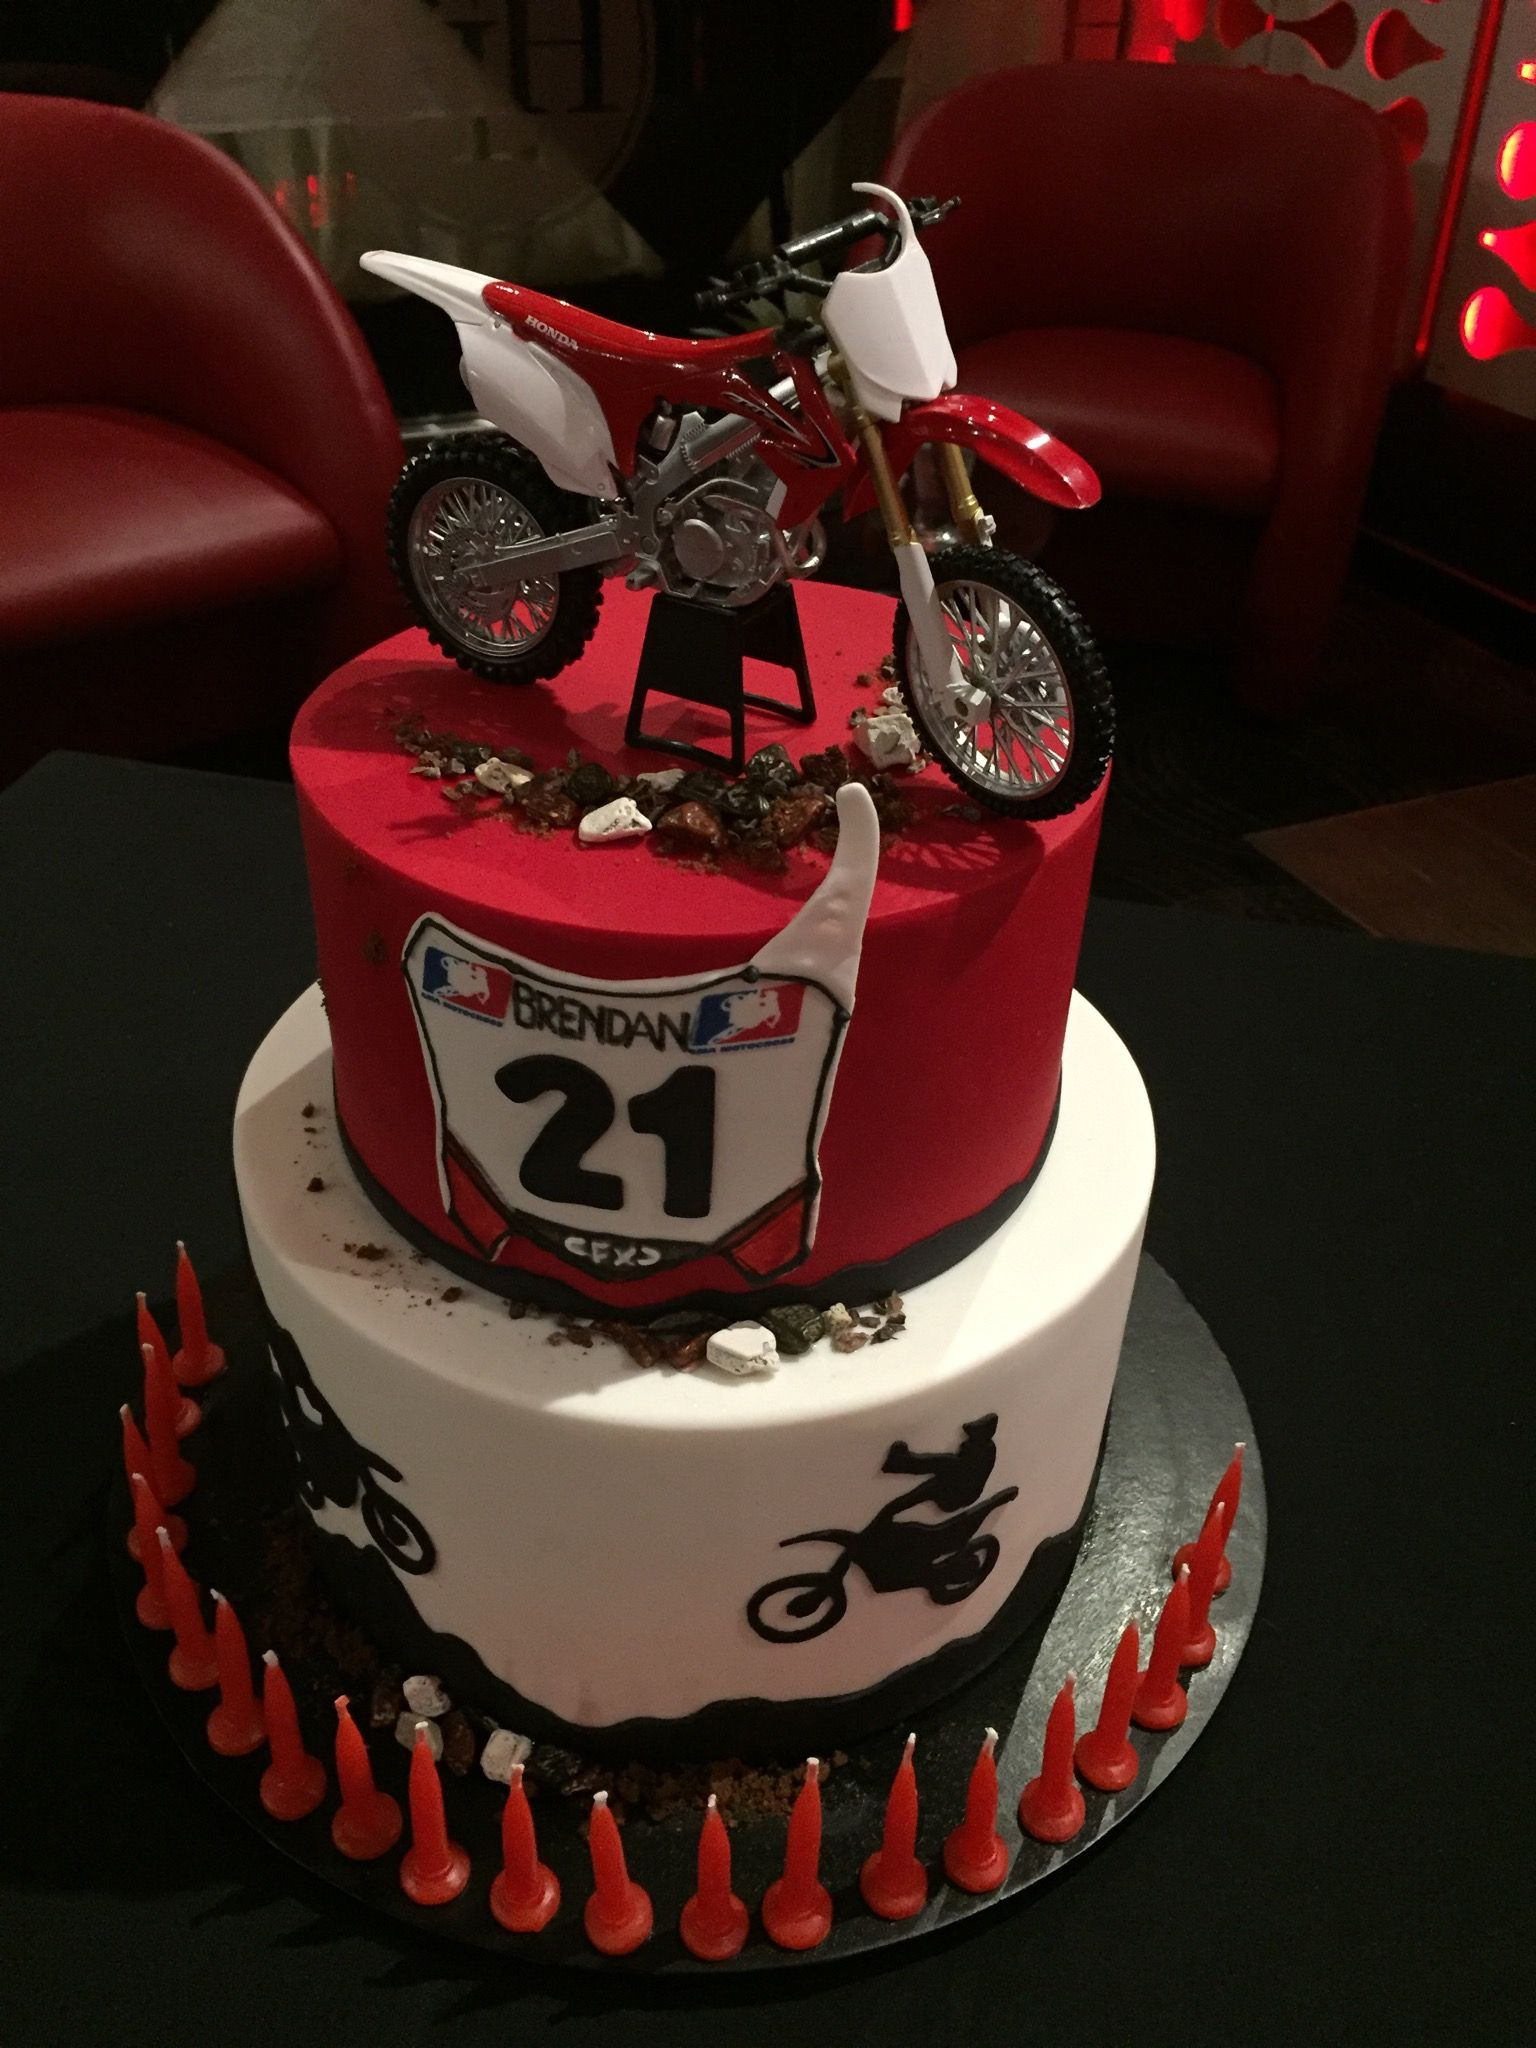 Strange Motorcross Birthday Cake Fairynuffcakes Motocross Birthday Funny Birthday Cards Online Inifofree Goldxyz